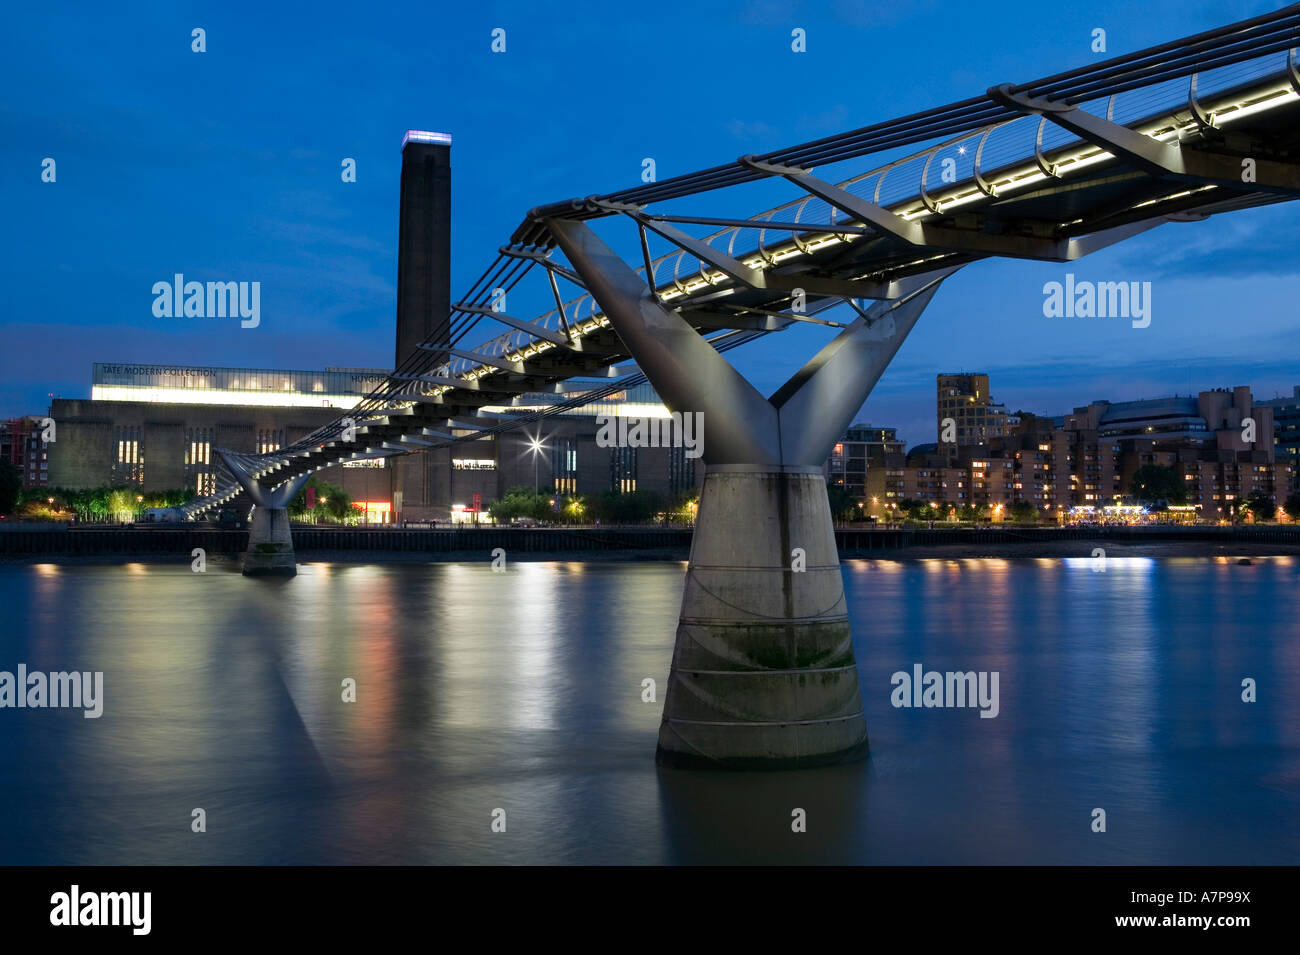 Tate Modern & Millennium Bridge, London, England - Stock Image